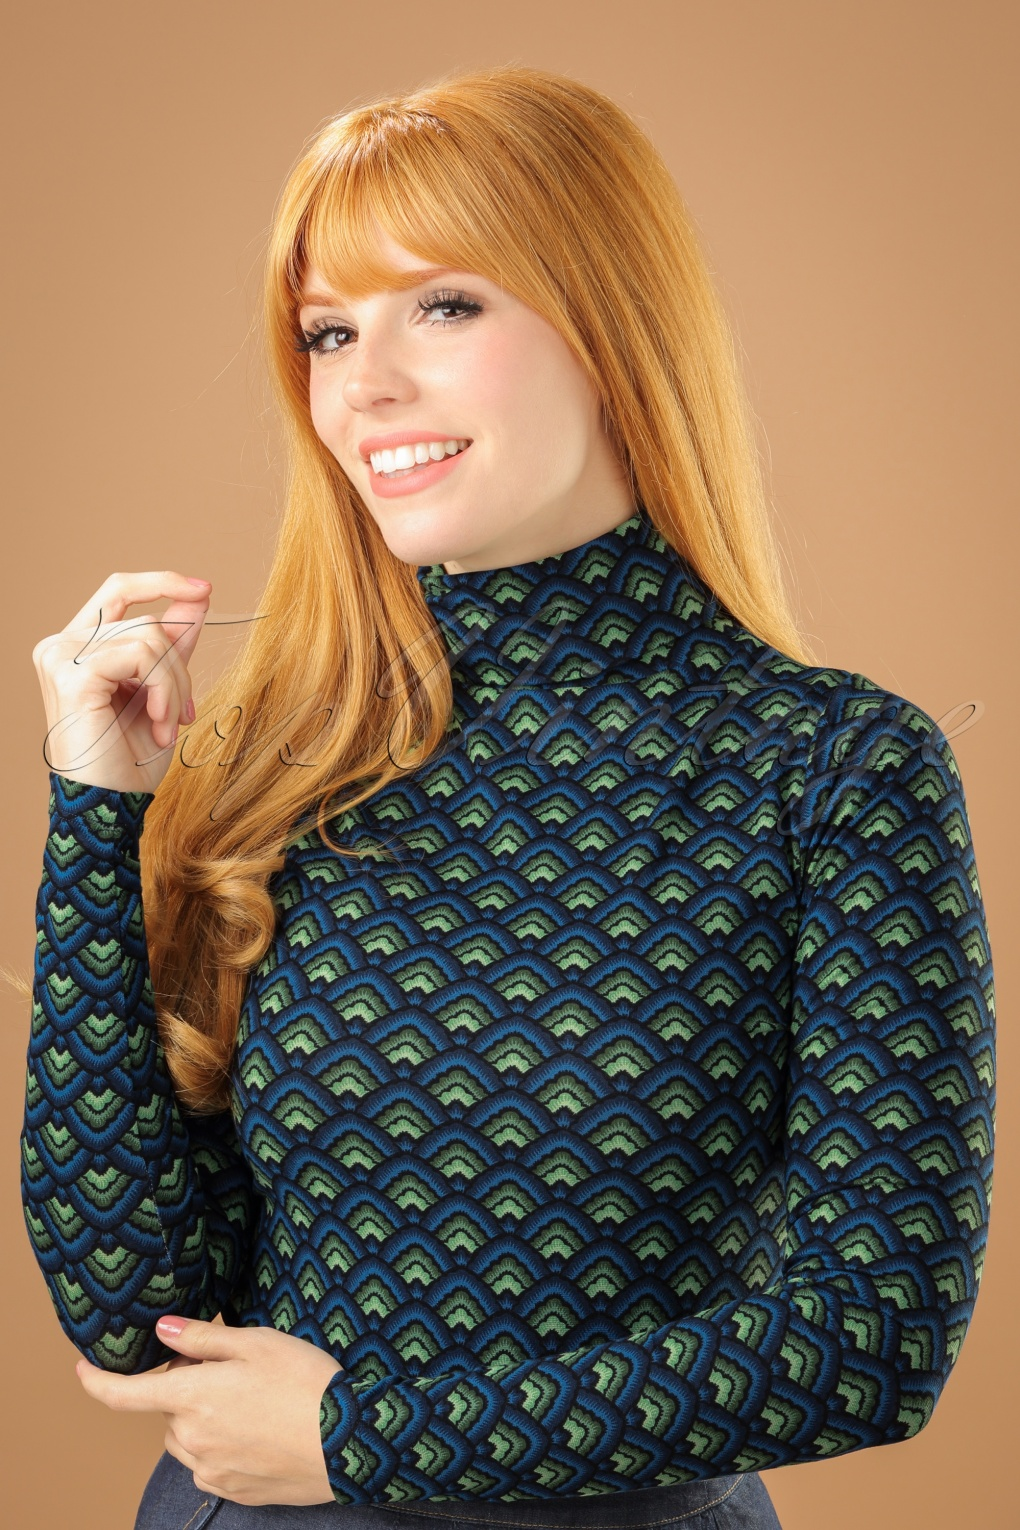 Vintage Sweaters: 1940s, 1950s, 1960s Pictures 60s Betsy Fuji Rollneck Top in Dark Navy £50.00 AT vintagedancer.com